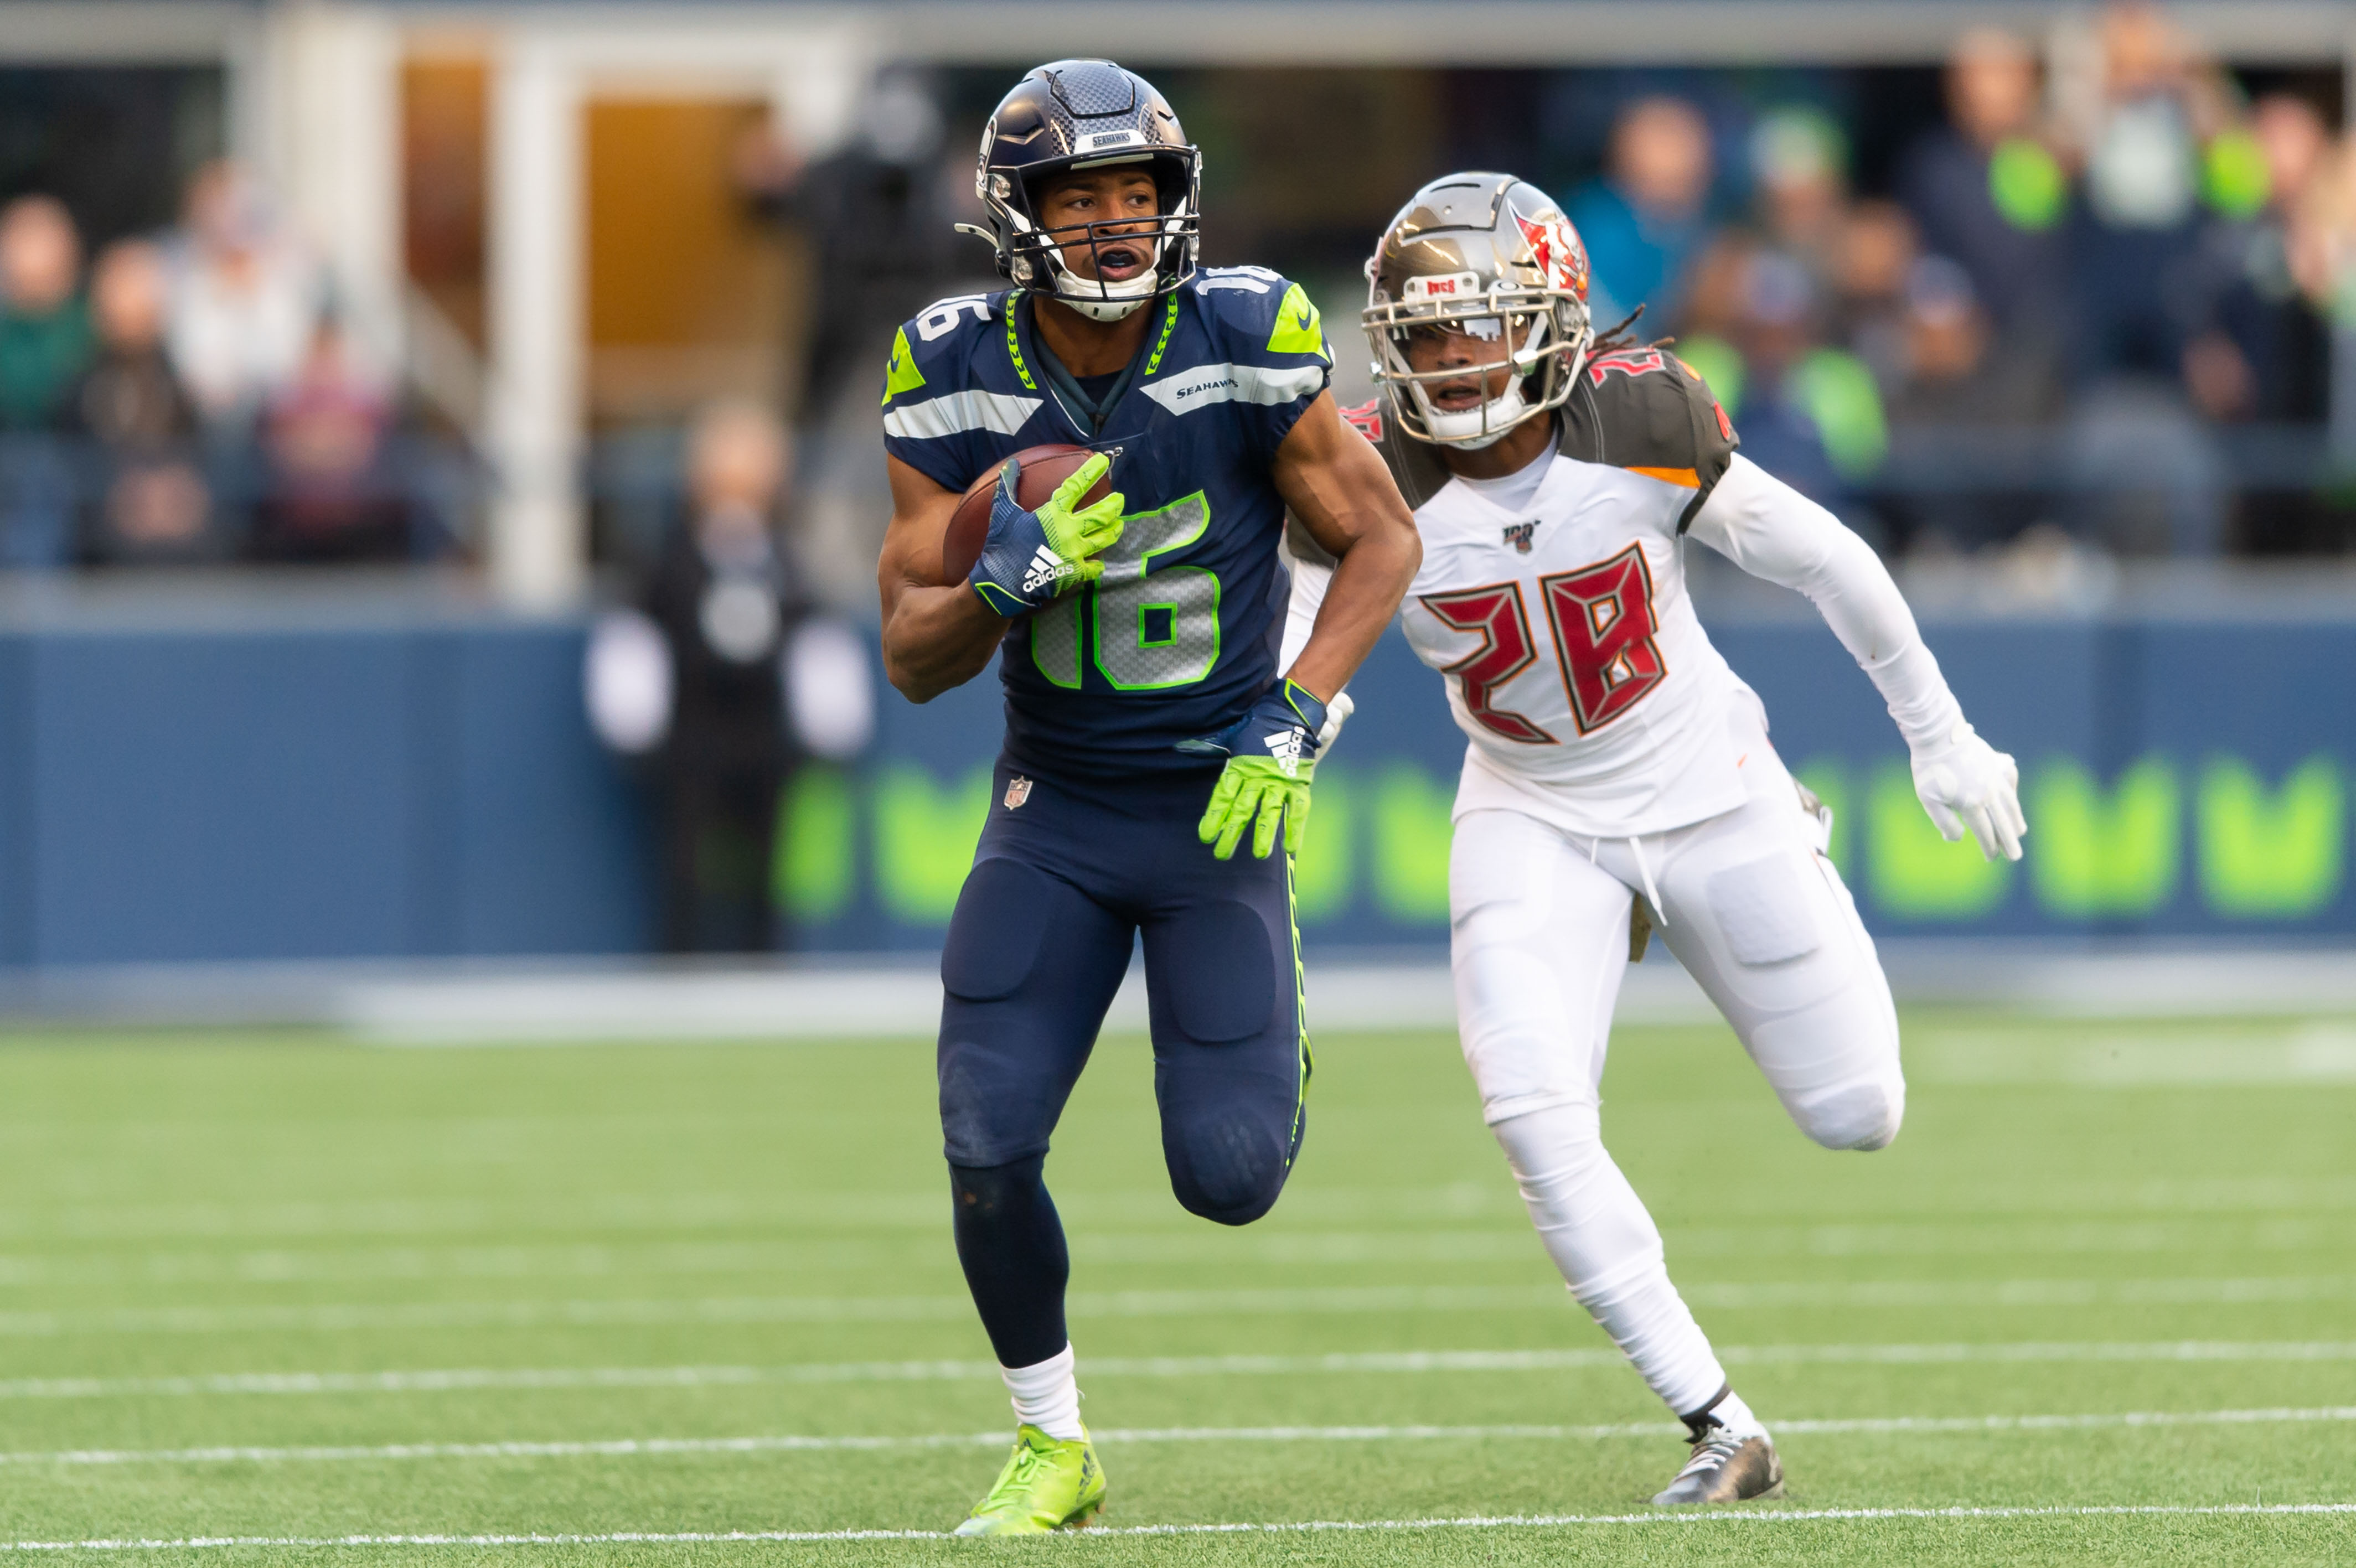 Seahawks Believe WR Tyler Lockett Will Make Significant Impact in Final 3 Games